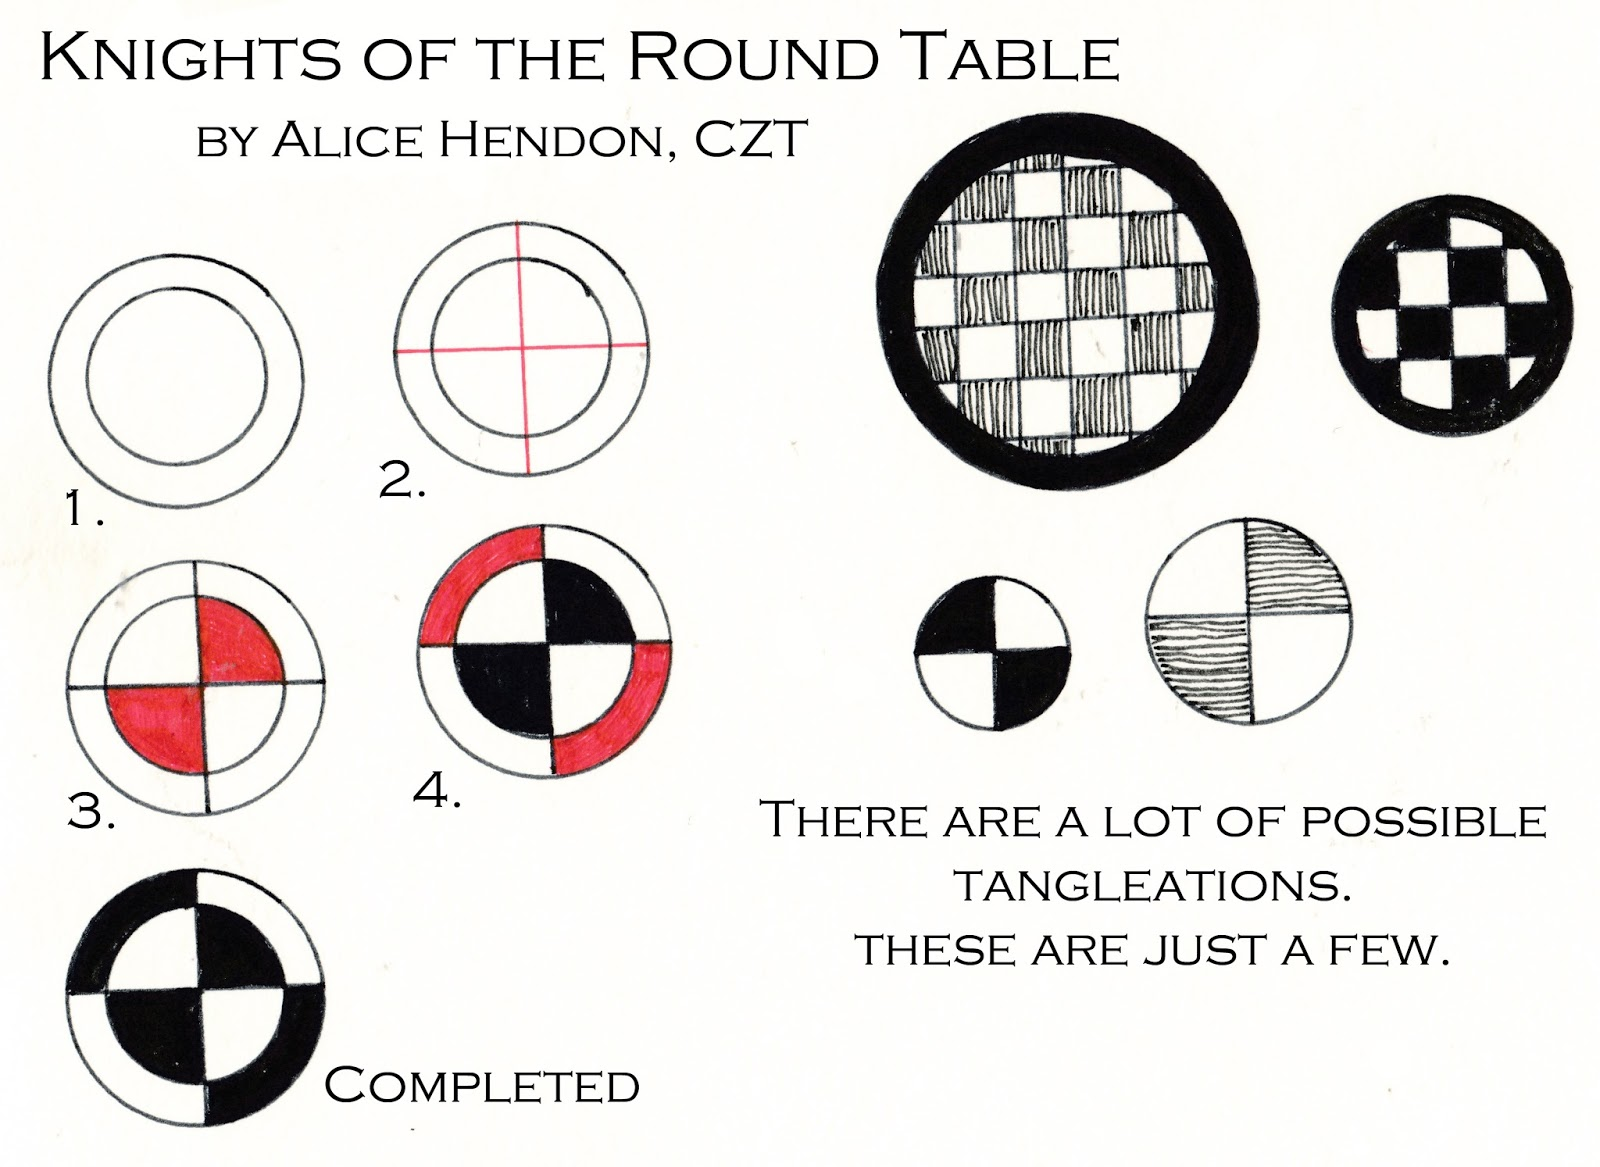 The creator 39 s leaf new tangle knights of the round table for 10 knights of the round table